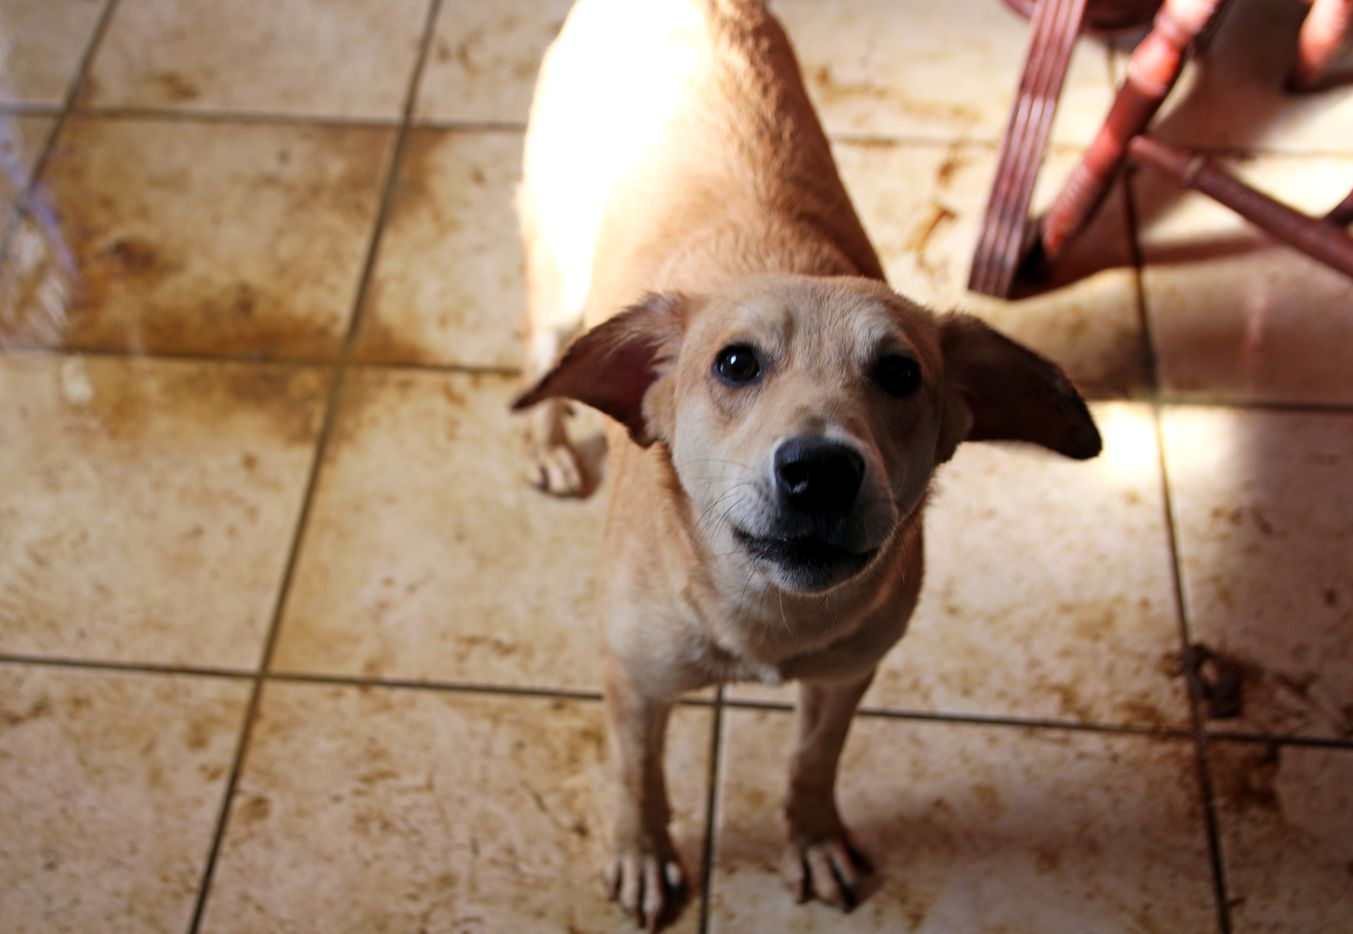 The SPCA will evaluate the animals for adoption or placement on a case-by-case basis.